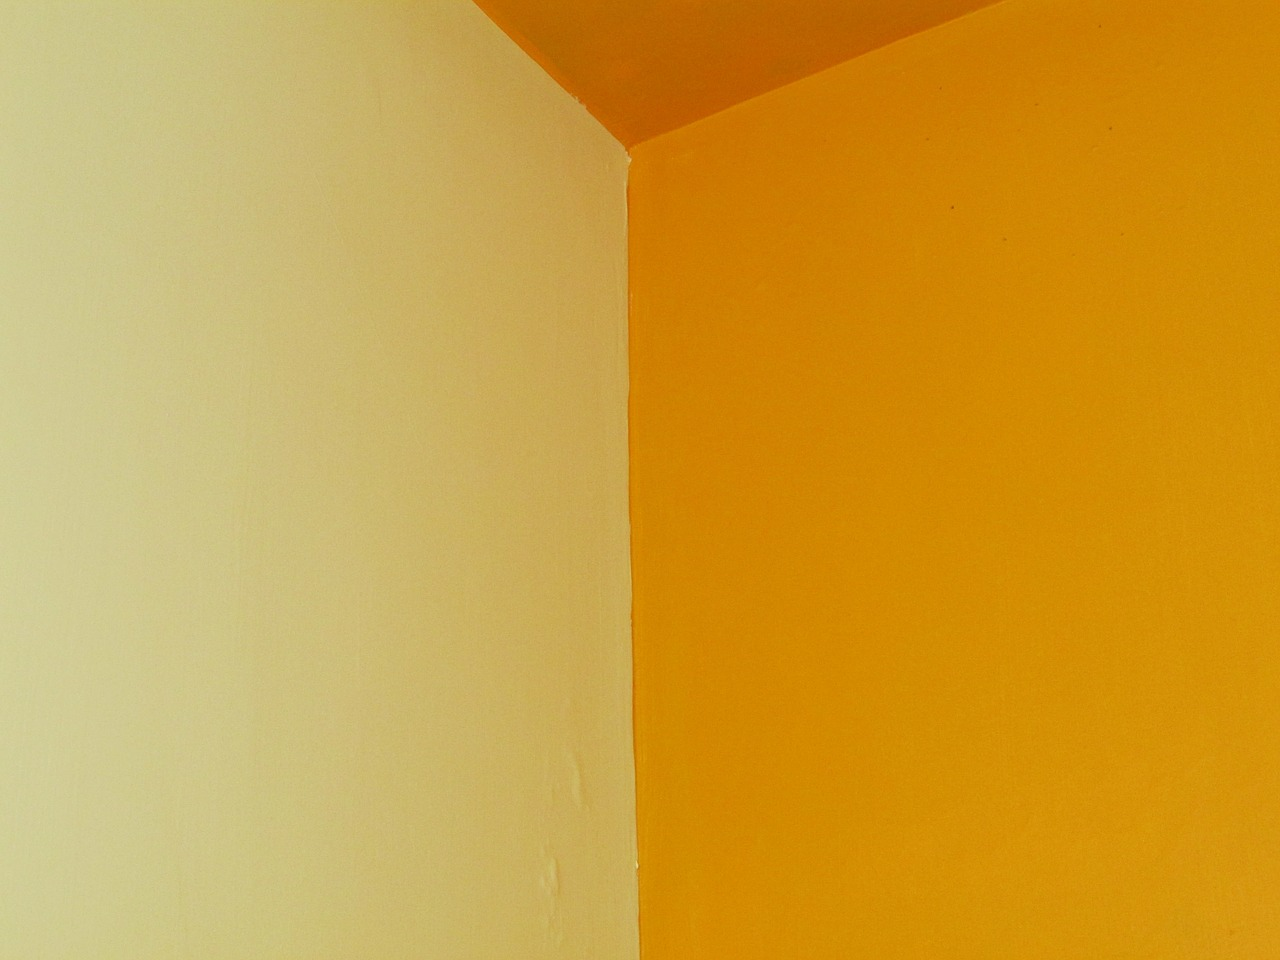 Edge,room,color combination,wall,yellow - free image from needpix.com